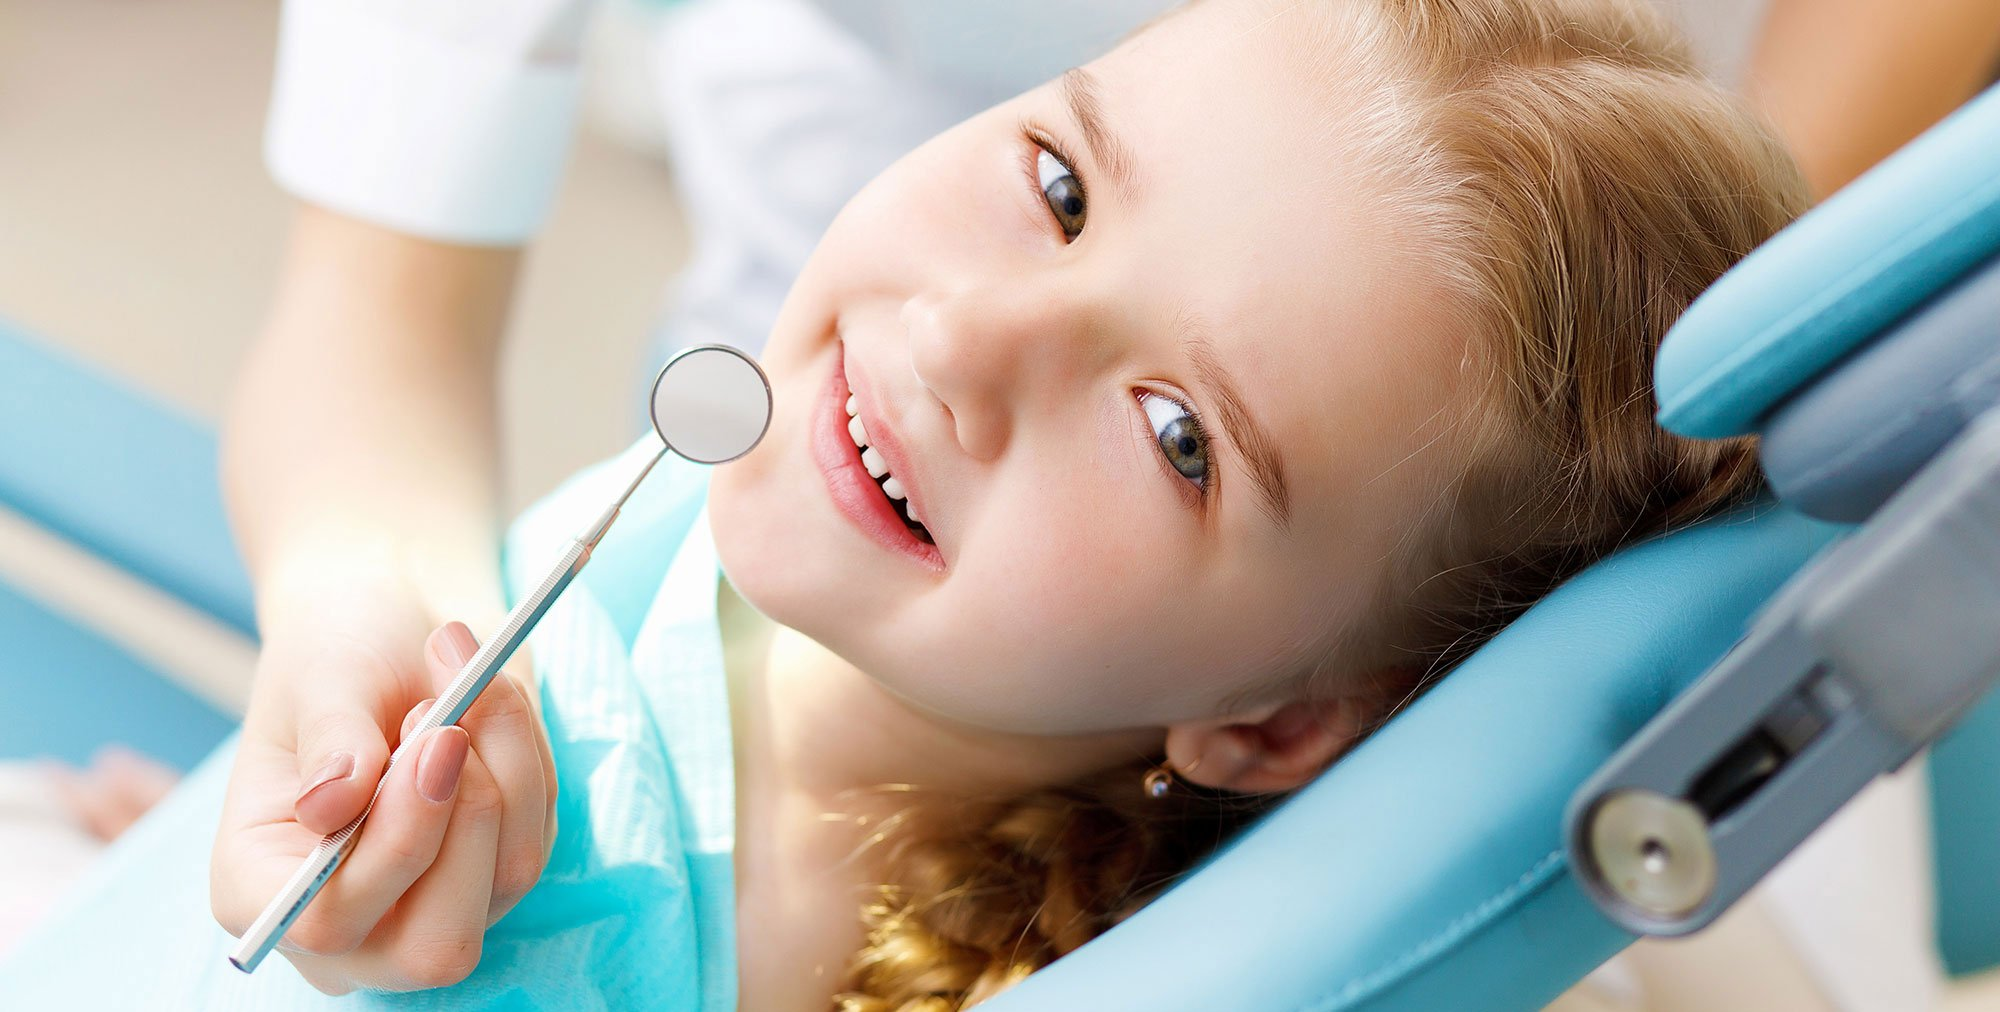 Family dental care in Fayetteville, Arkansas